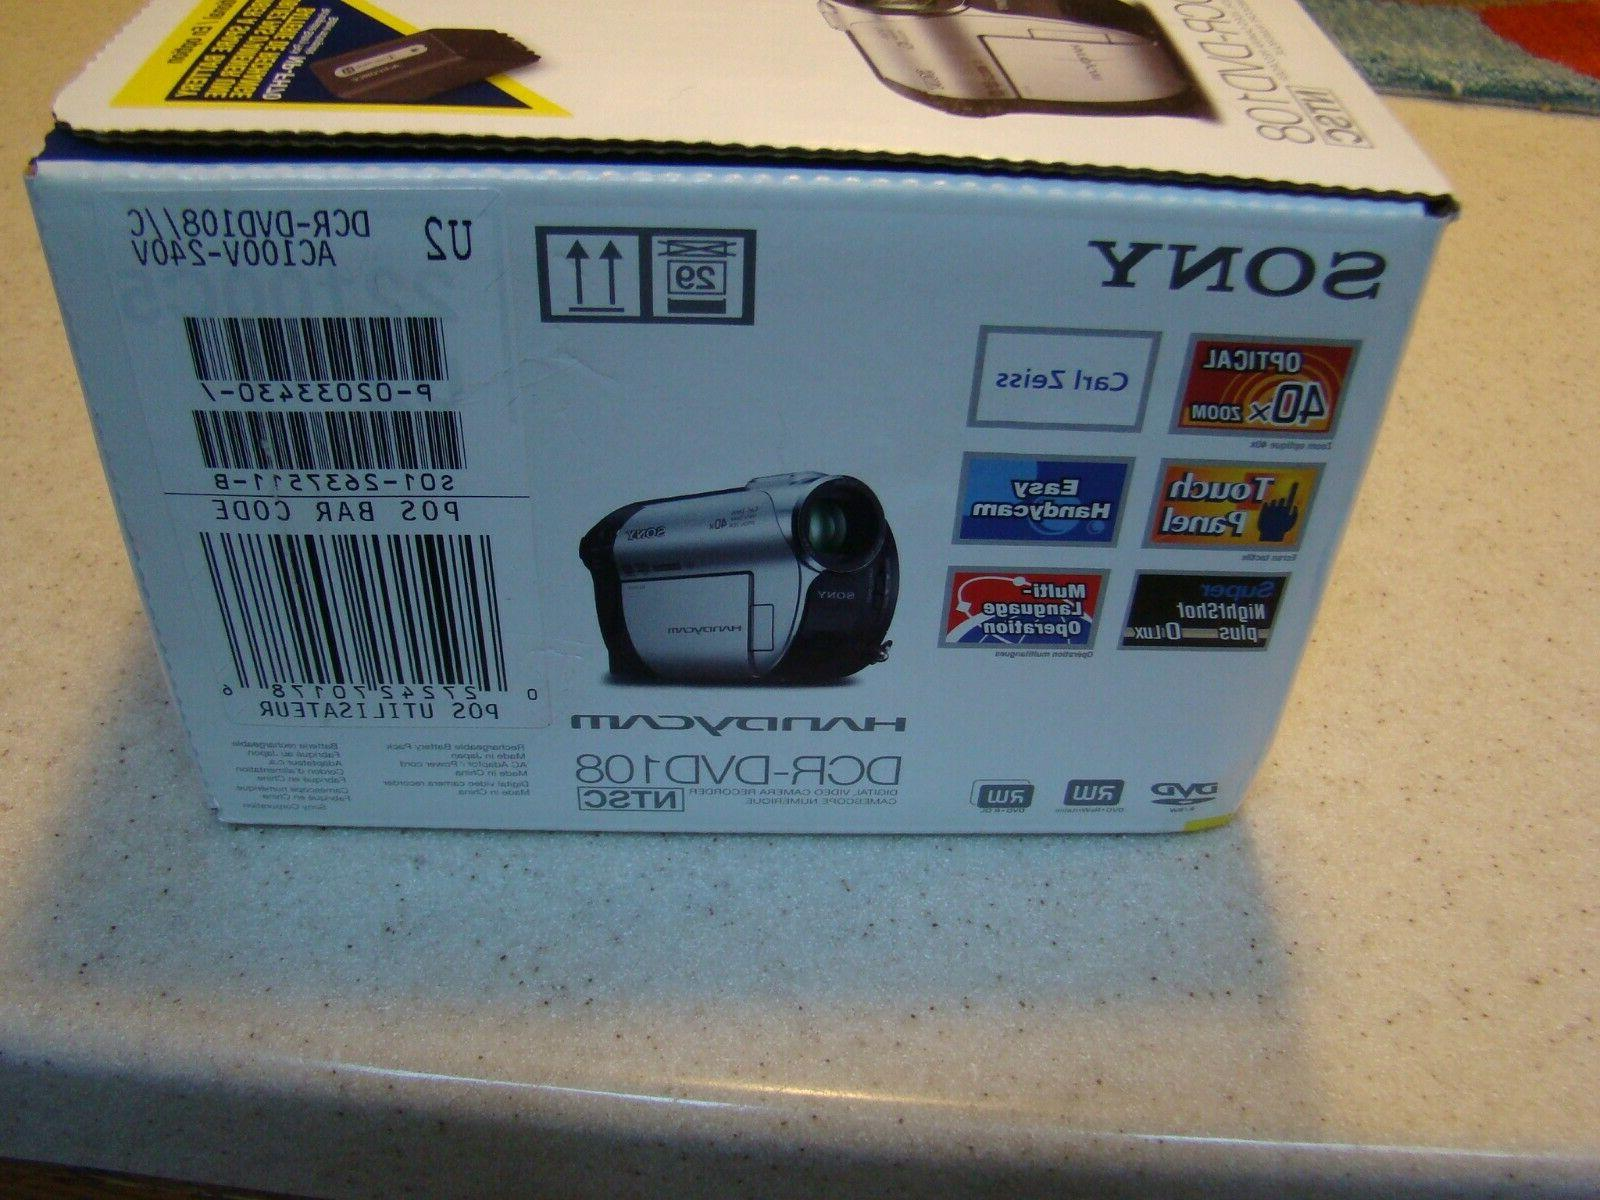 Sony DCR-DVD108 DVD Handycam Camcorder W/ 40x Zoom. BRAND SEALED BOX